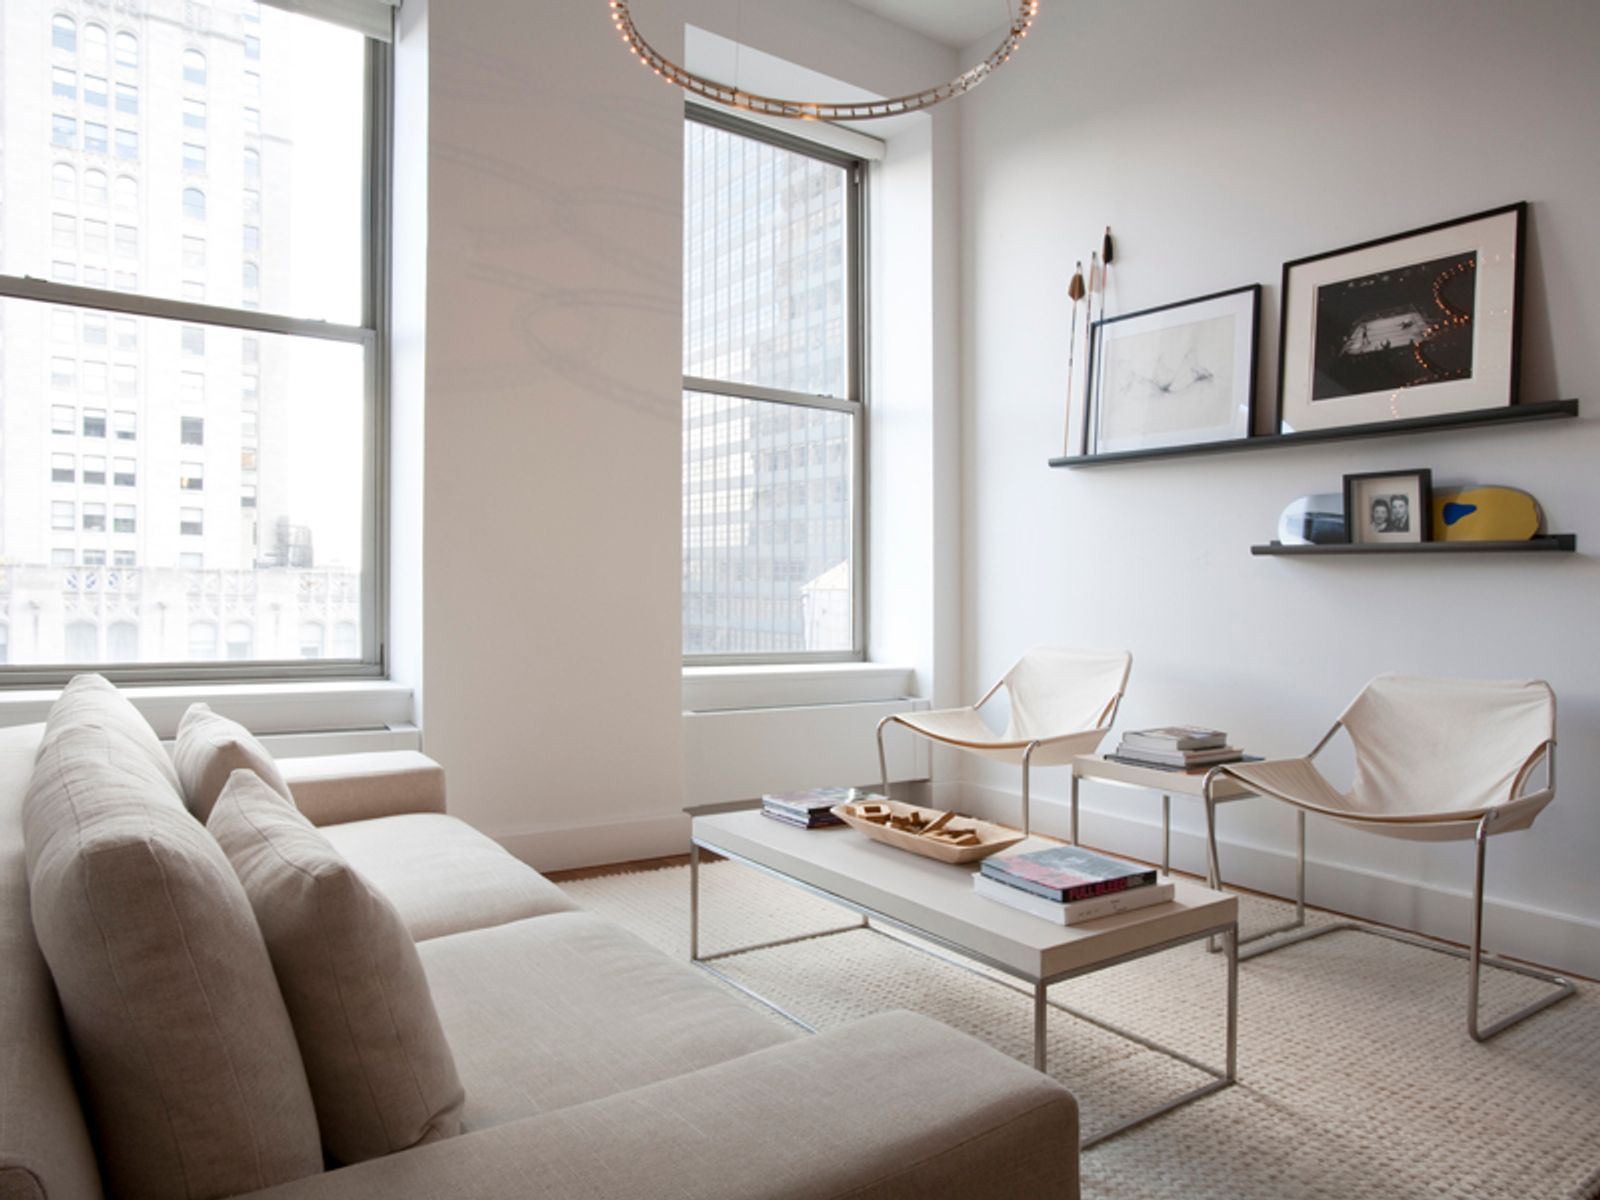 15 Madison Square North, Apt 15C, New York NY Condominium - New York City Real Estate